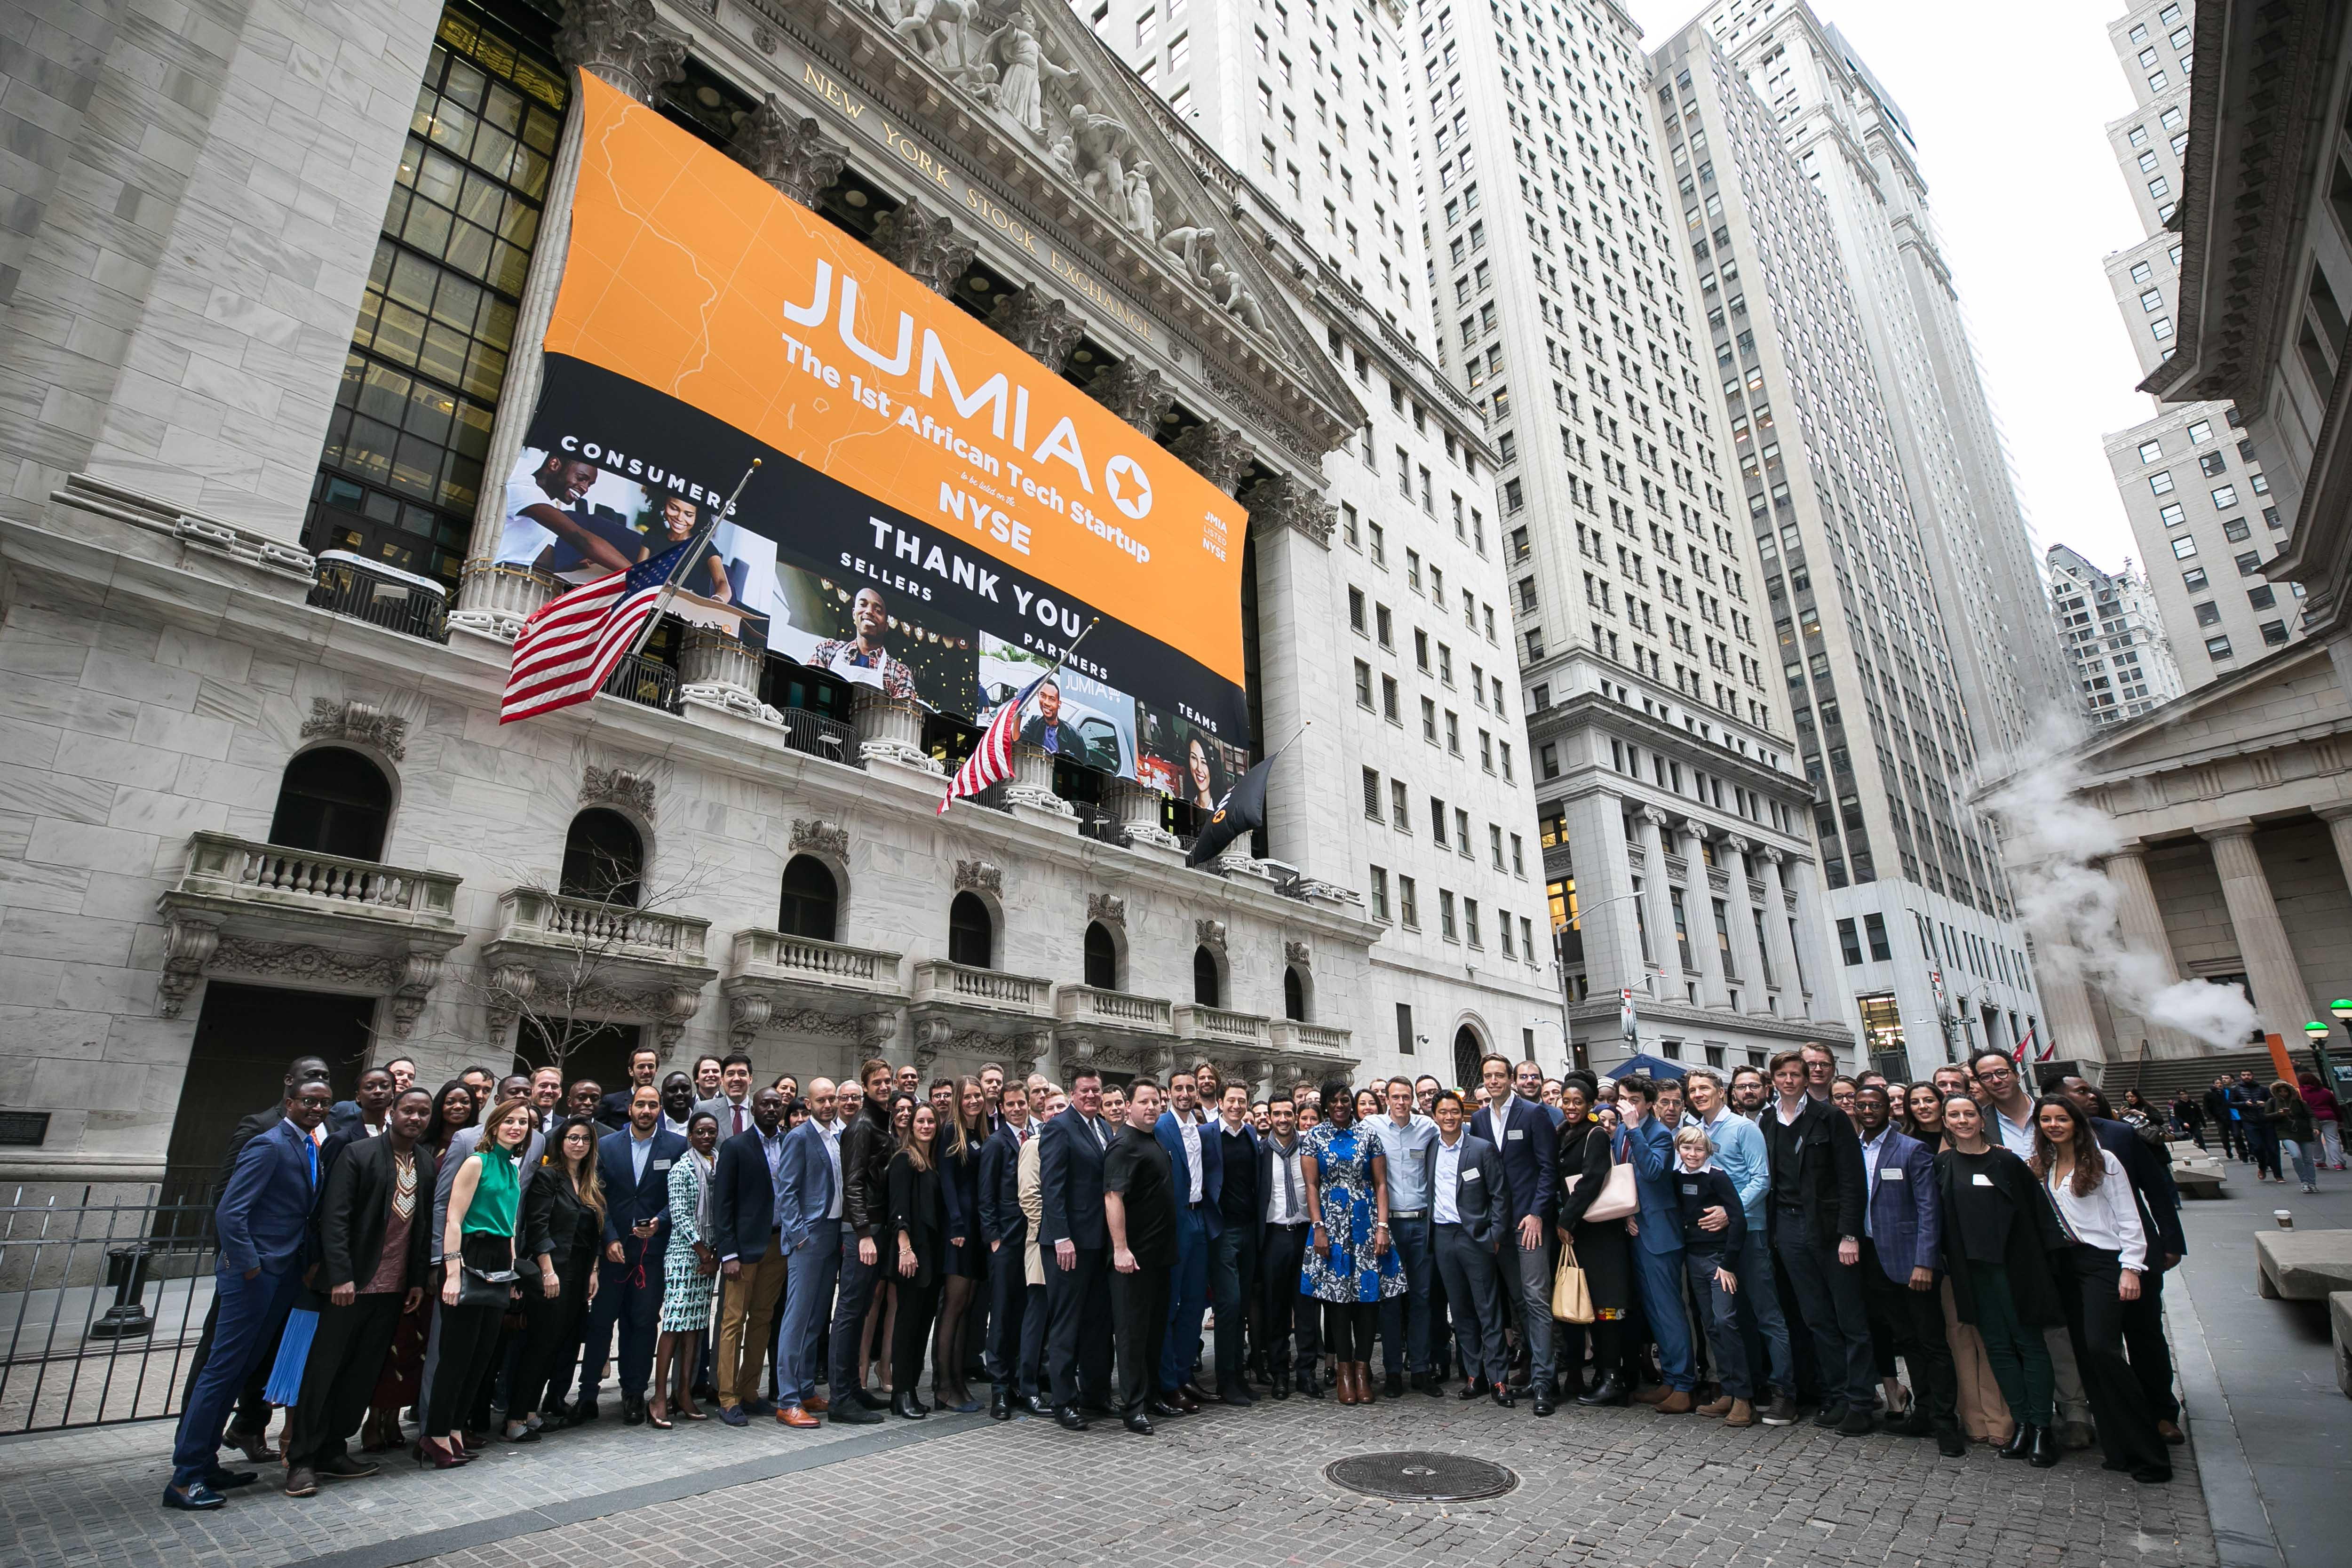 qz.com - Yomi Kazeem - What makes us African is our exclusive focus on African consumers, says Jumia's co-founder